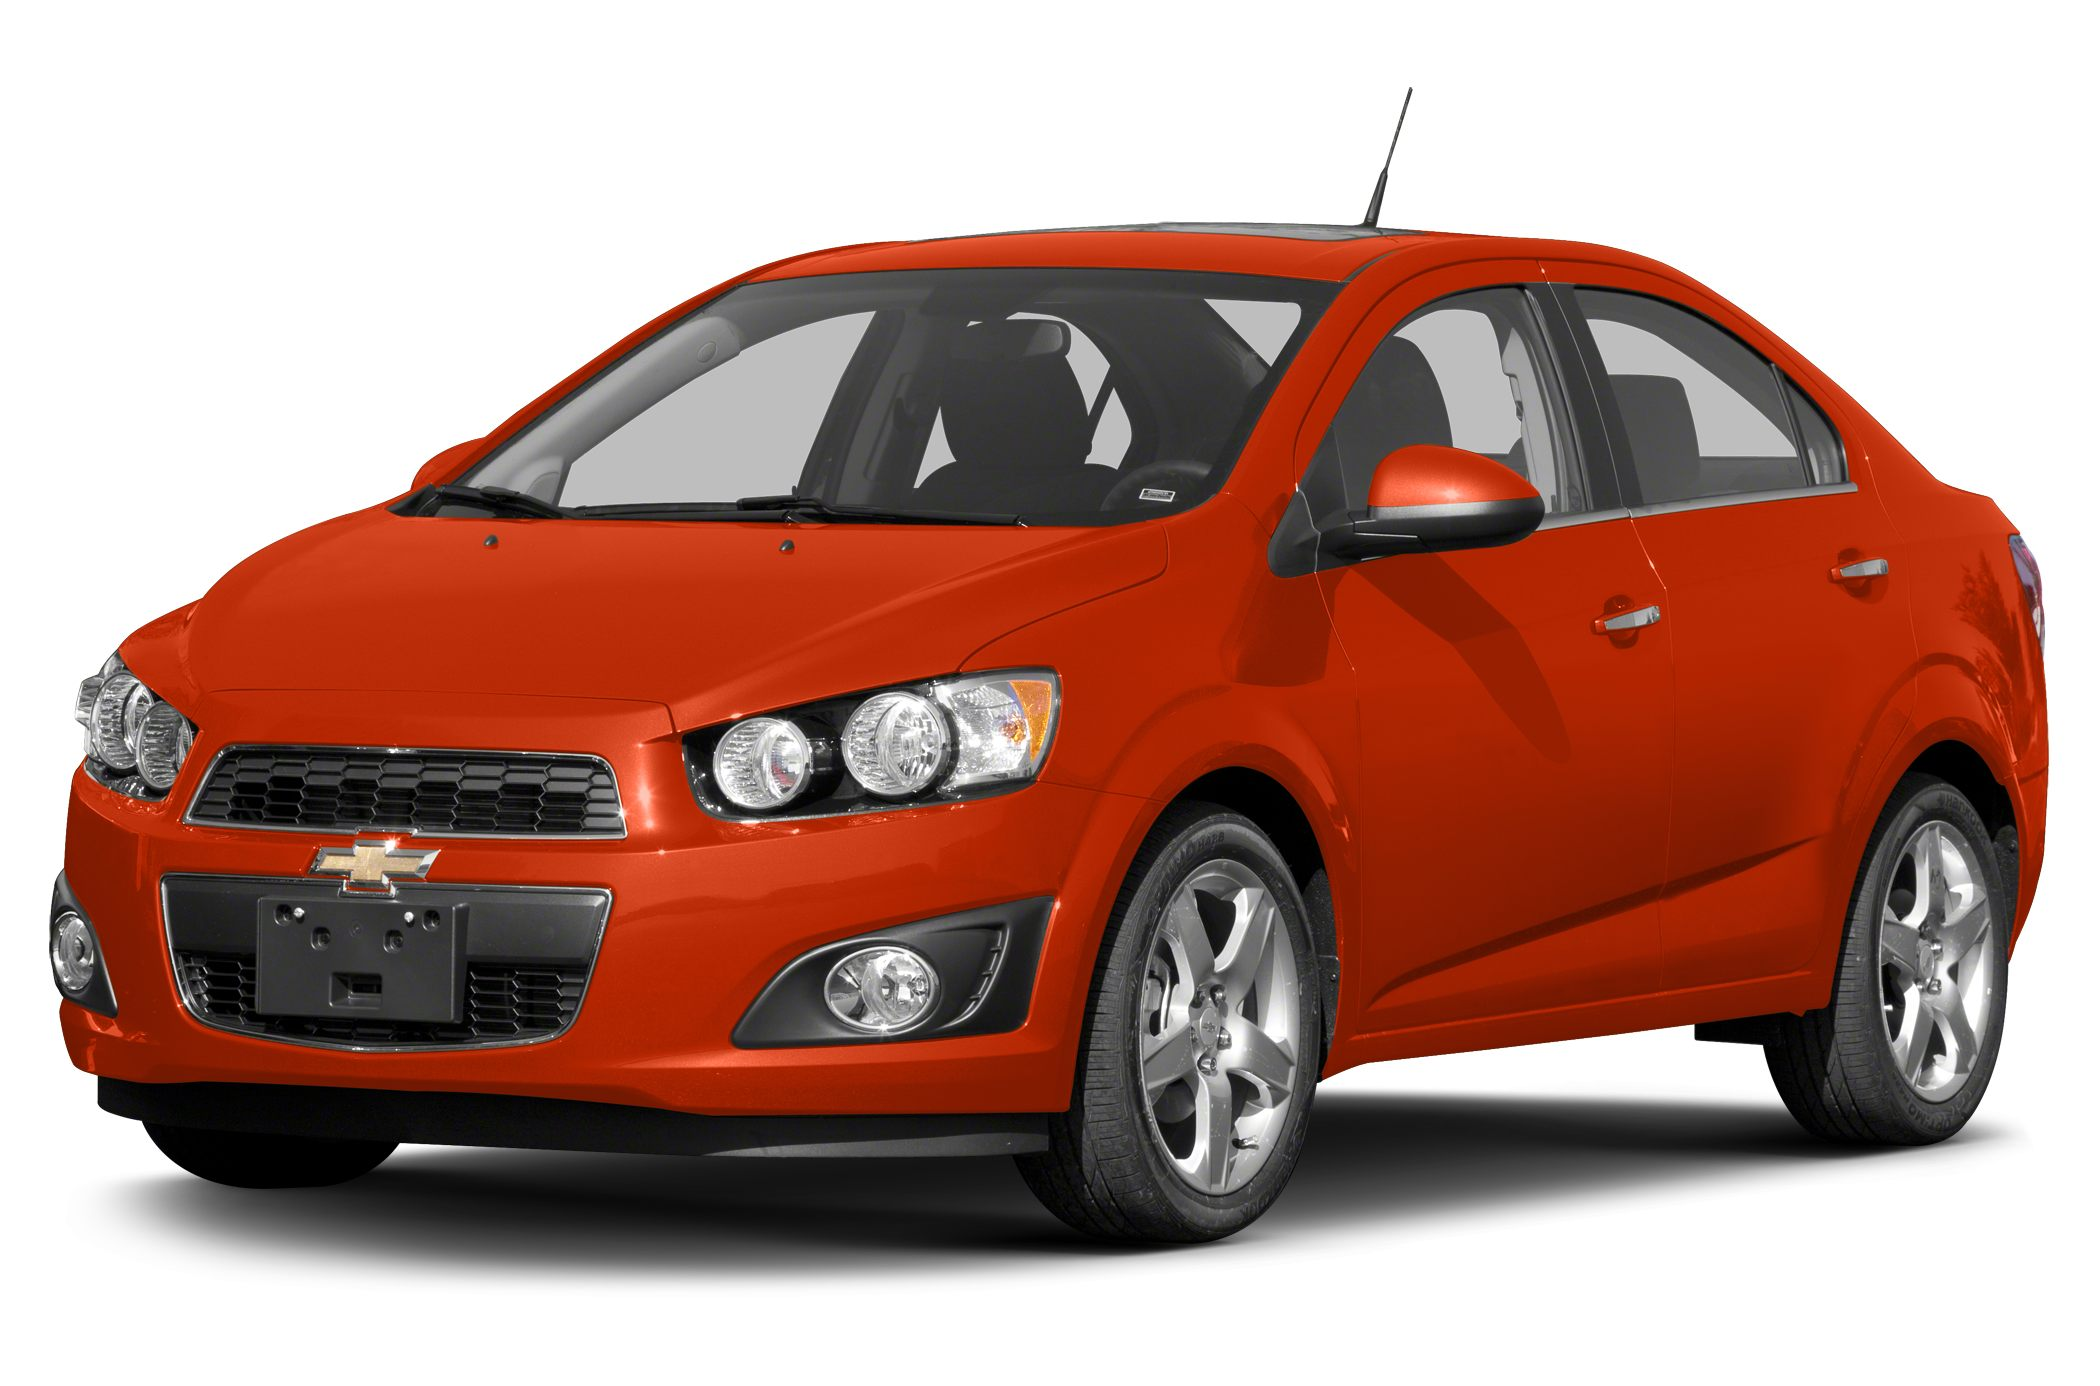 2013 Chevrolet Sonic LT Hatchback for sale in Sacramento for $9,995 with 50,718 miles